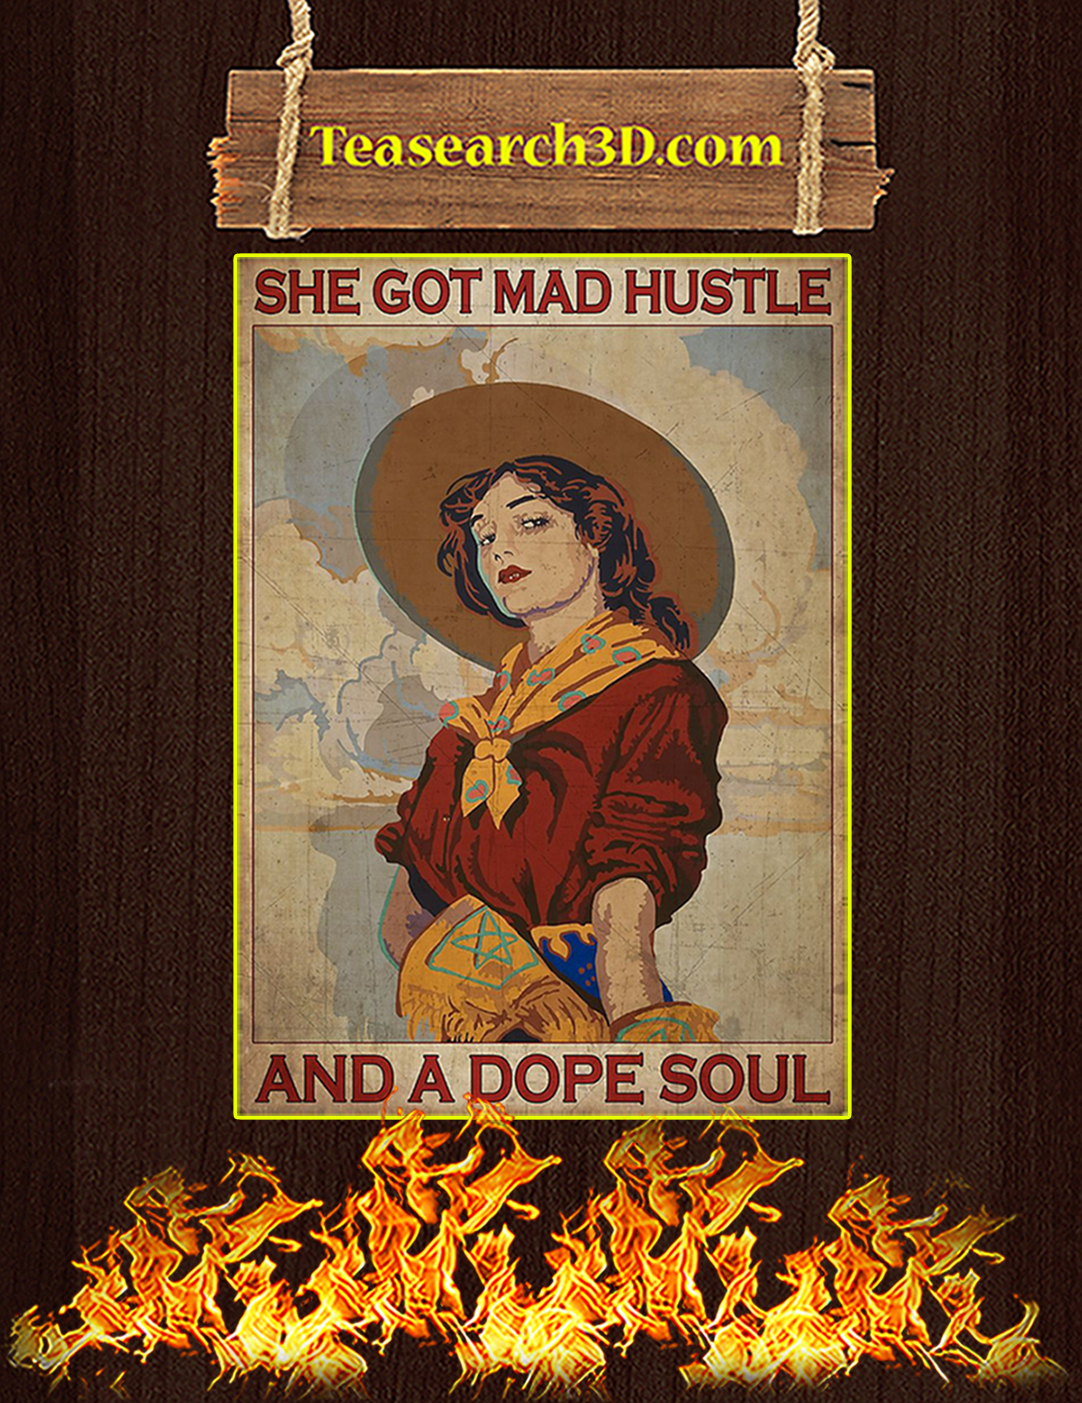 She got mad hustle and a dope soul poster A2